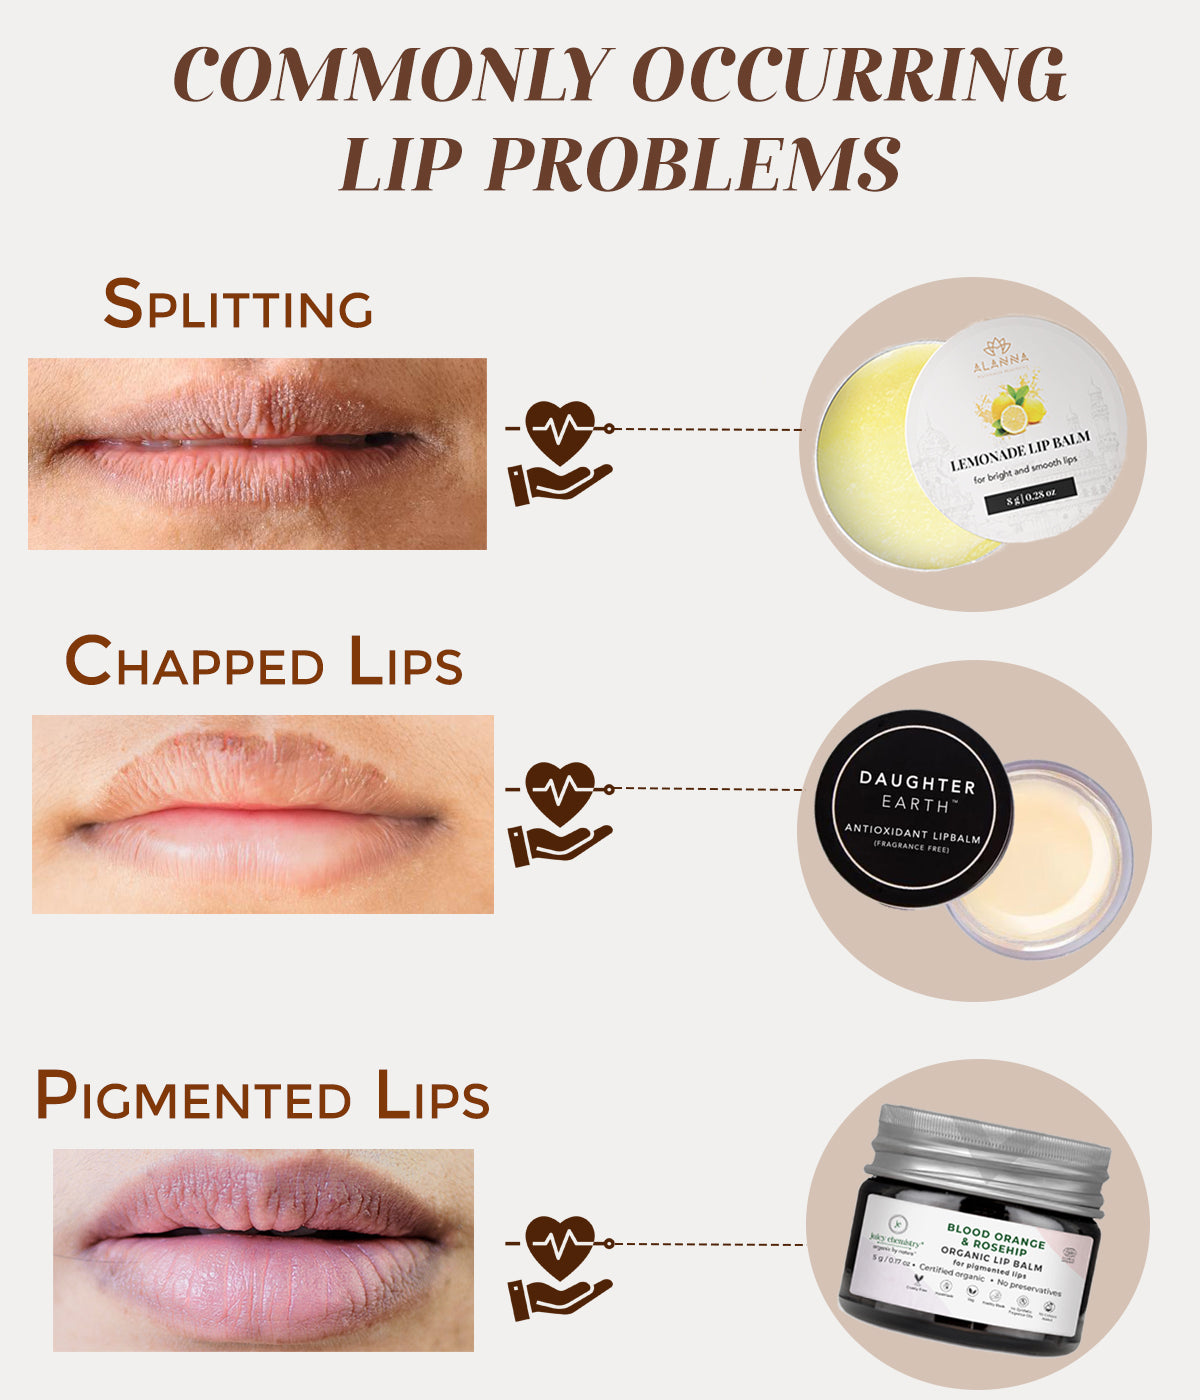 This is an image of commonly occuring lip problems